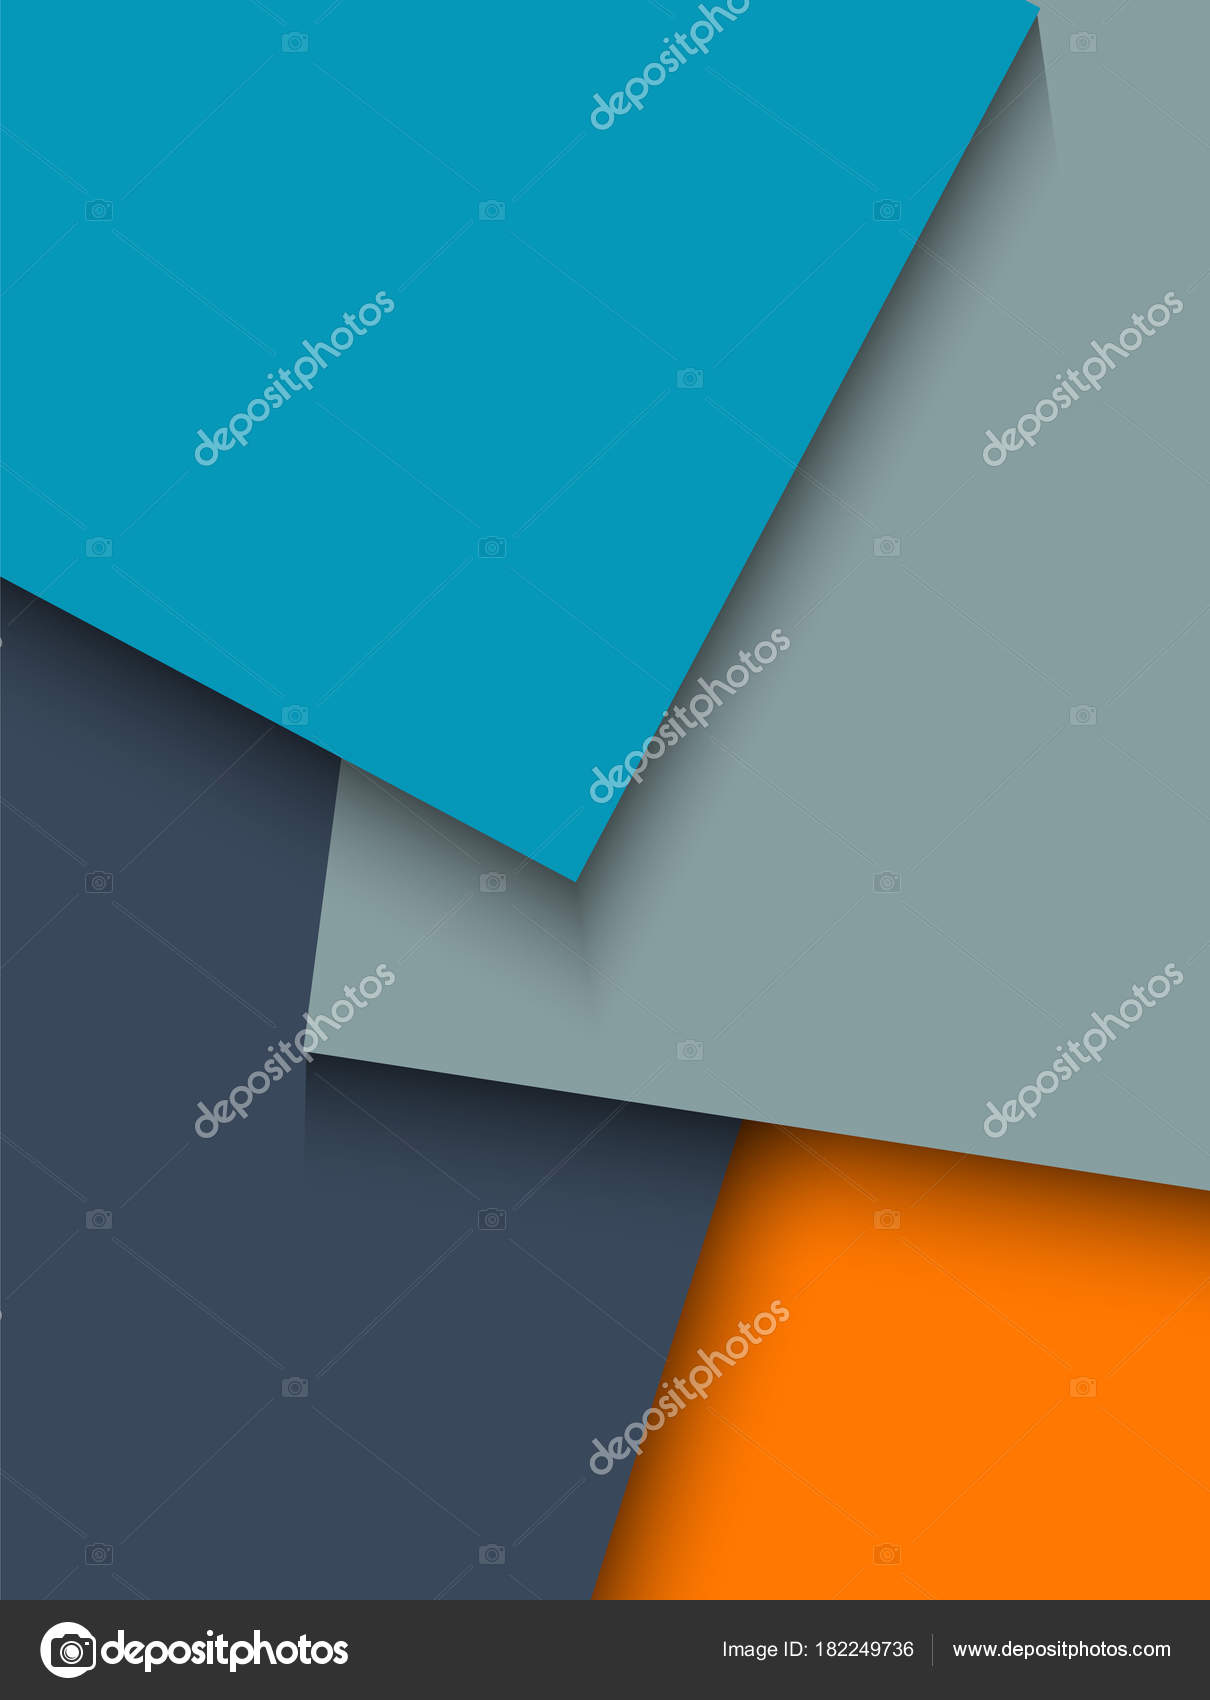 design element background effect overlaps colored sheets paper08 ...